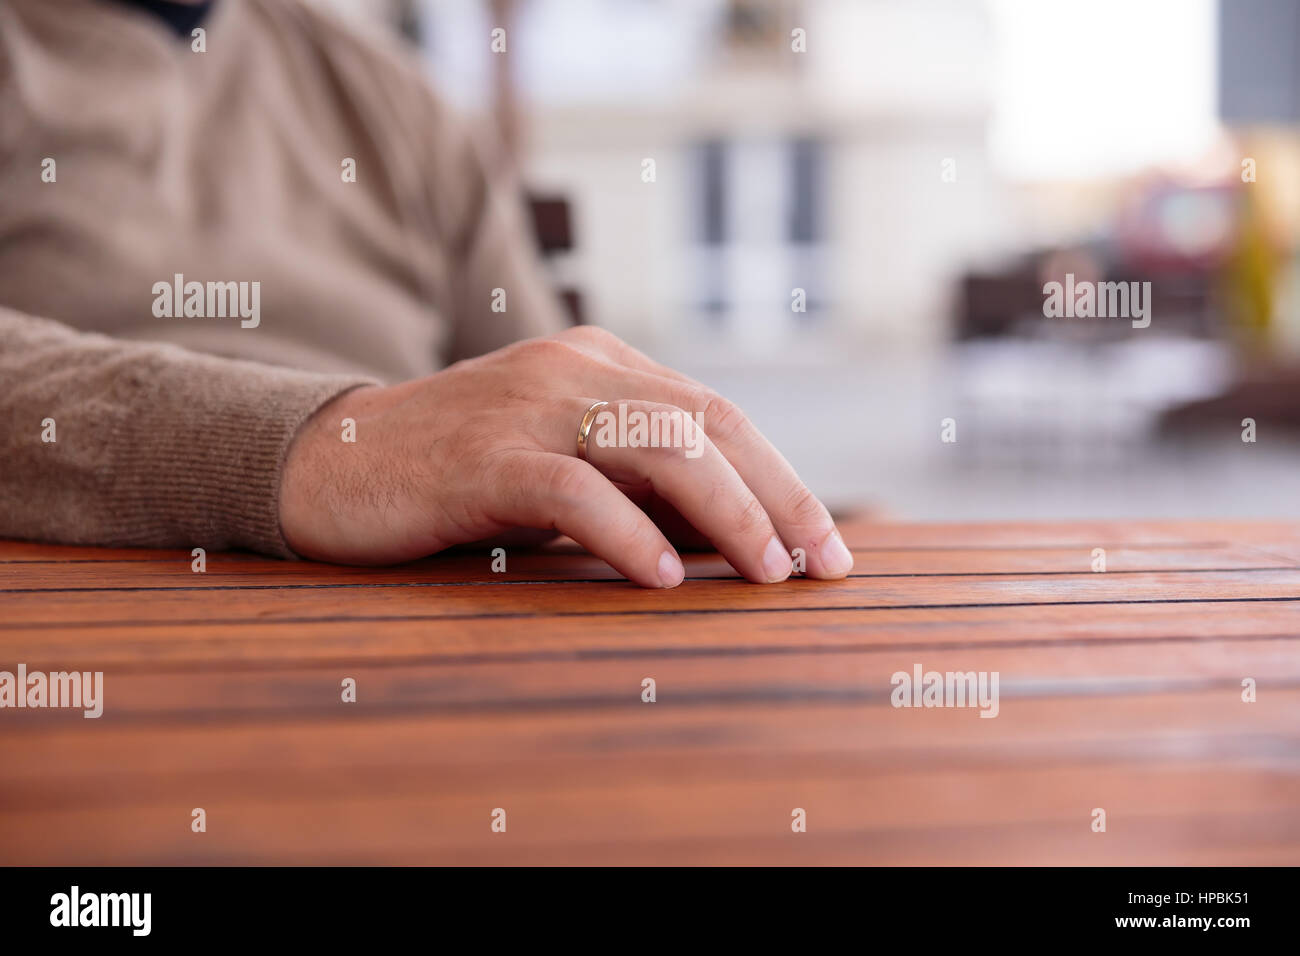 young man's hand with a gold wedding ring on  wooden table, blurred background - Stock Image